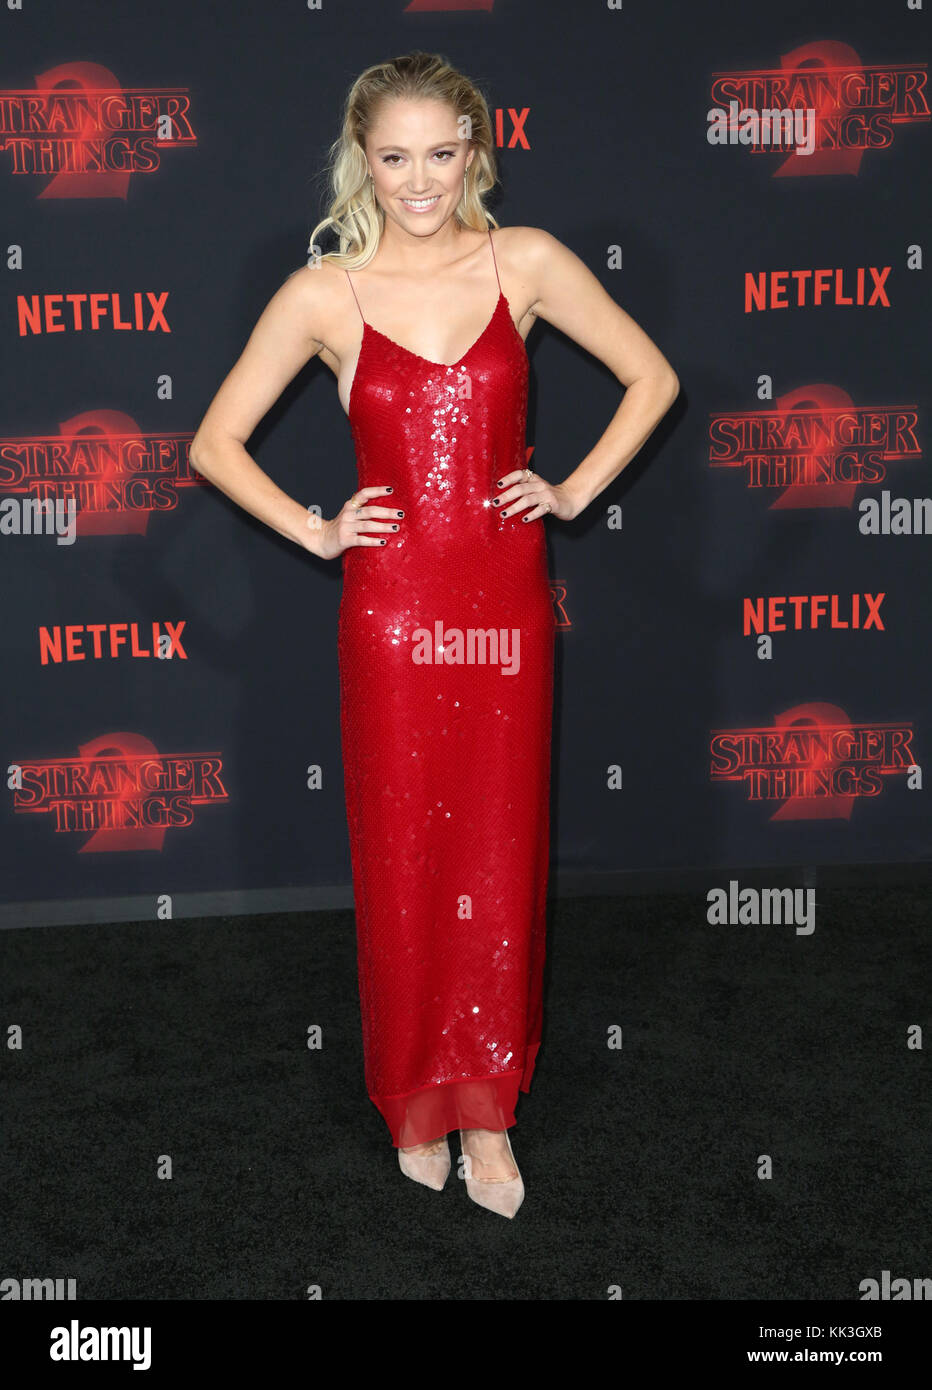 Celebrities attend Netflix's Stranger Things 2 Premiere at Westwood Village Theater.  Featuring: Maika Monroe - Stock Image